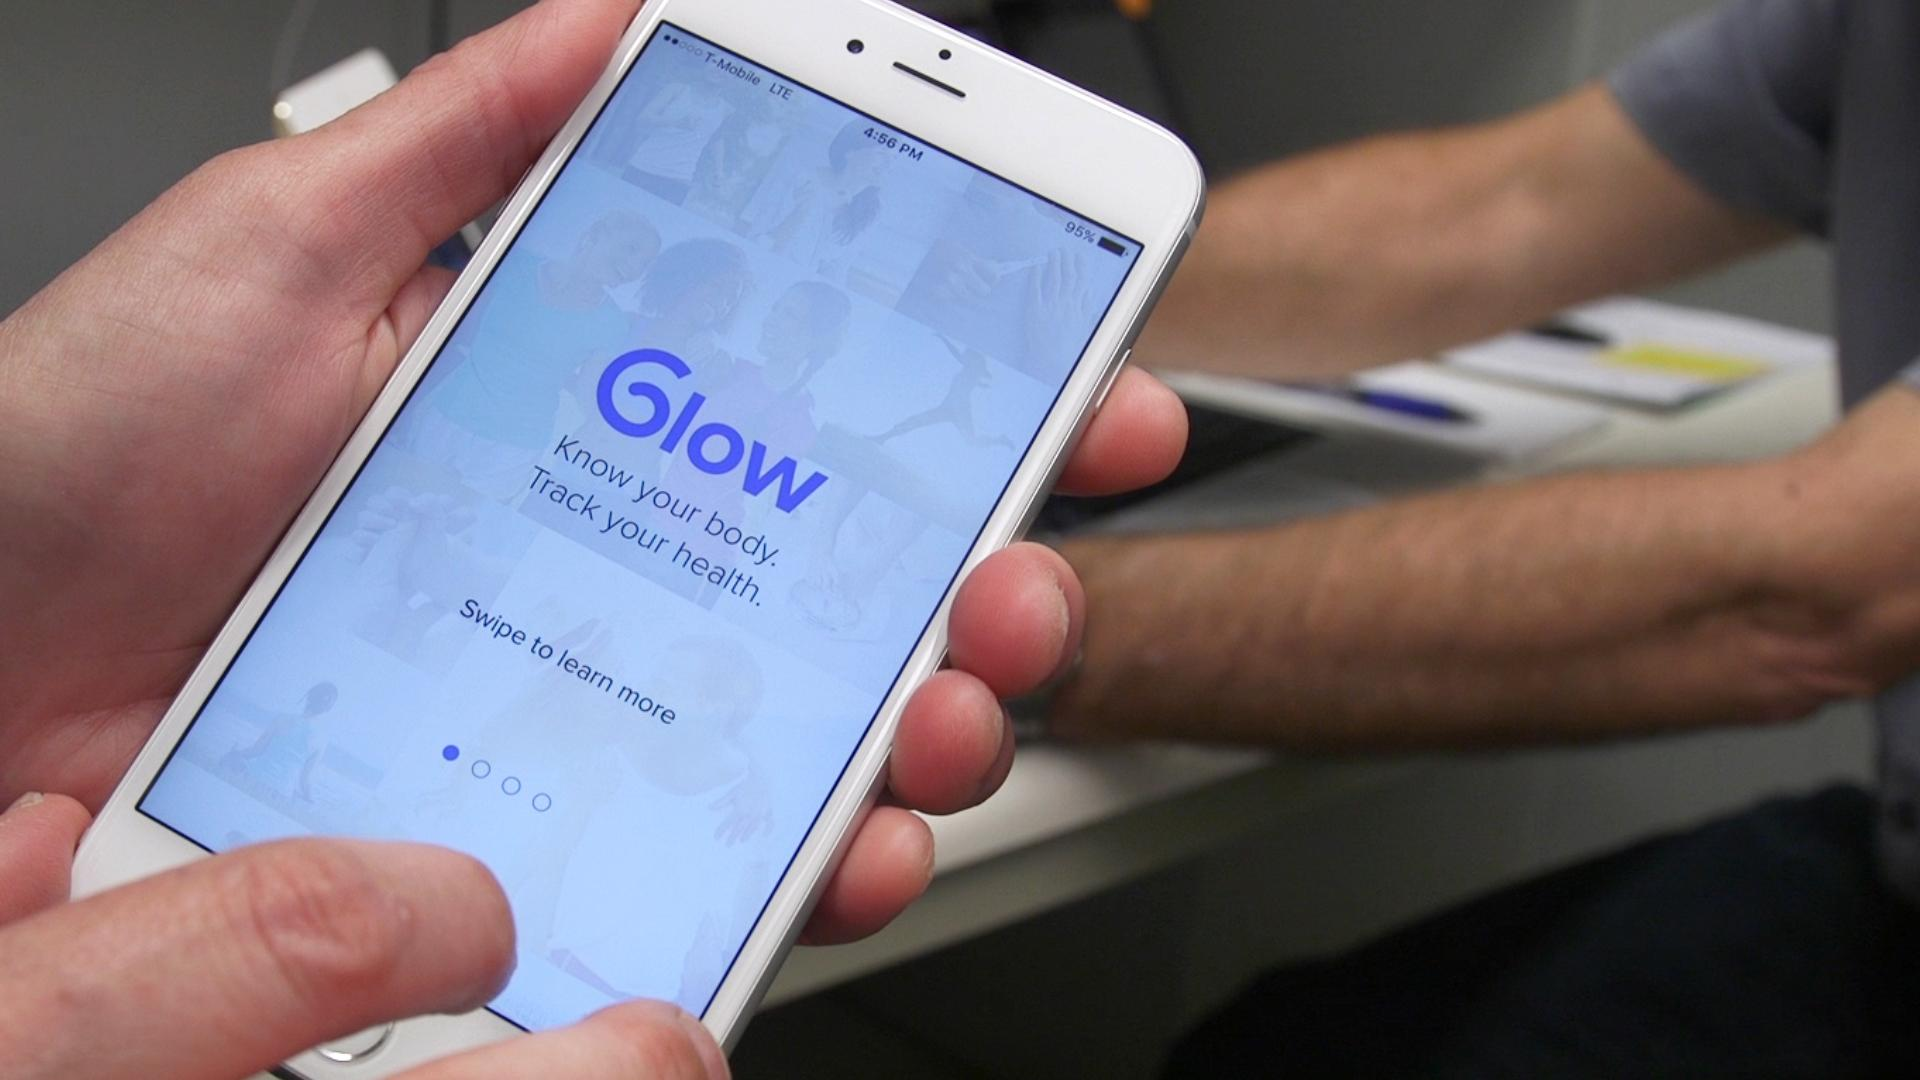 Baby cribs reviews consumer reports - Glow Pregnancy App Exposed Women To Privacy Threats Consumer Reports Finds